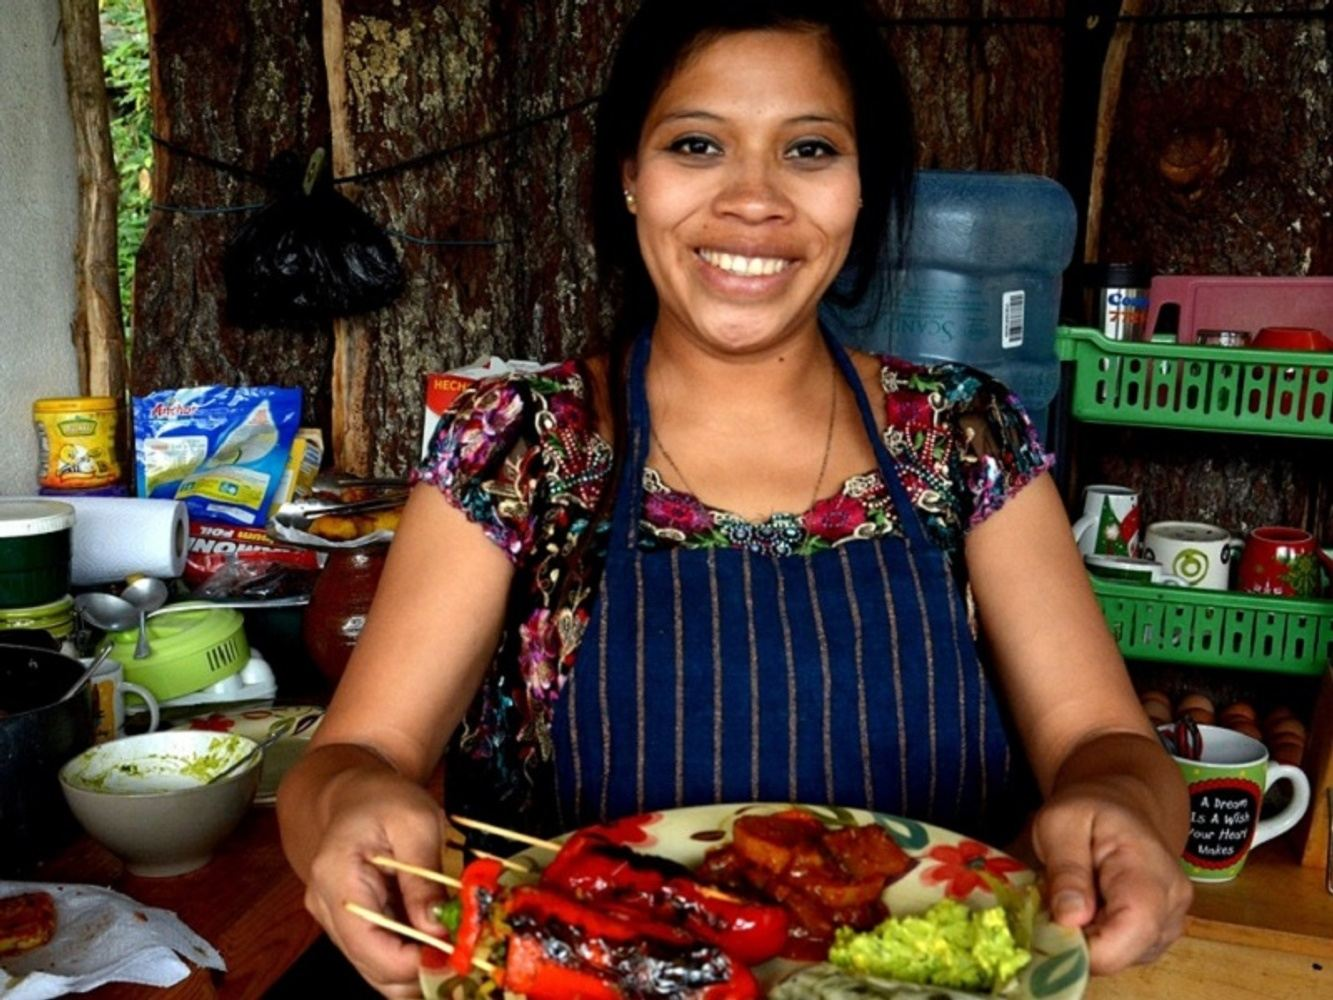 Mayan Kitchen Cooking: An Online Travel Experience to Guatemala